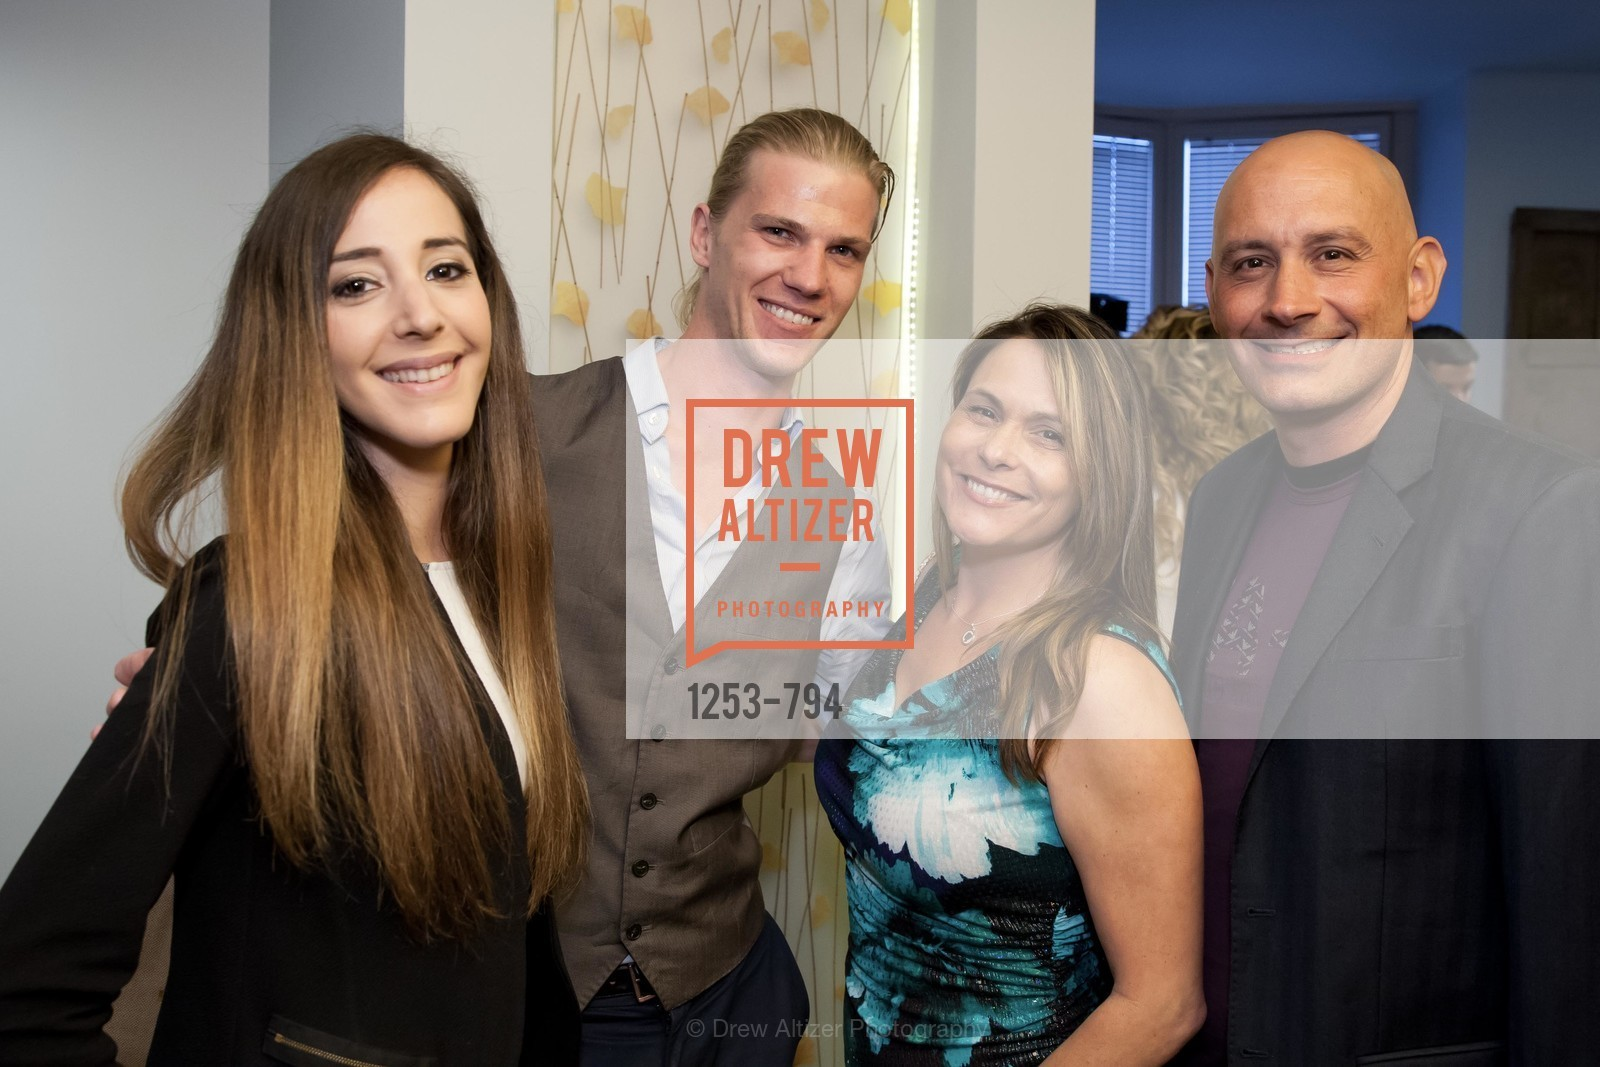 Sarah Cantalejo, Eric Ahlqvist Scott, Teresa Rodriguez, Scott Eddy, EPI CENTER MedSpa Anniversary and Launch of REPLETE - Evening Celebration, US, April 22nd, 2015,Drew Altizer, Drew Altizer Photography, full-service agency, private events, San Francisco photographer, photographer california